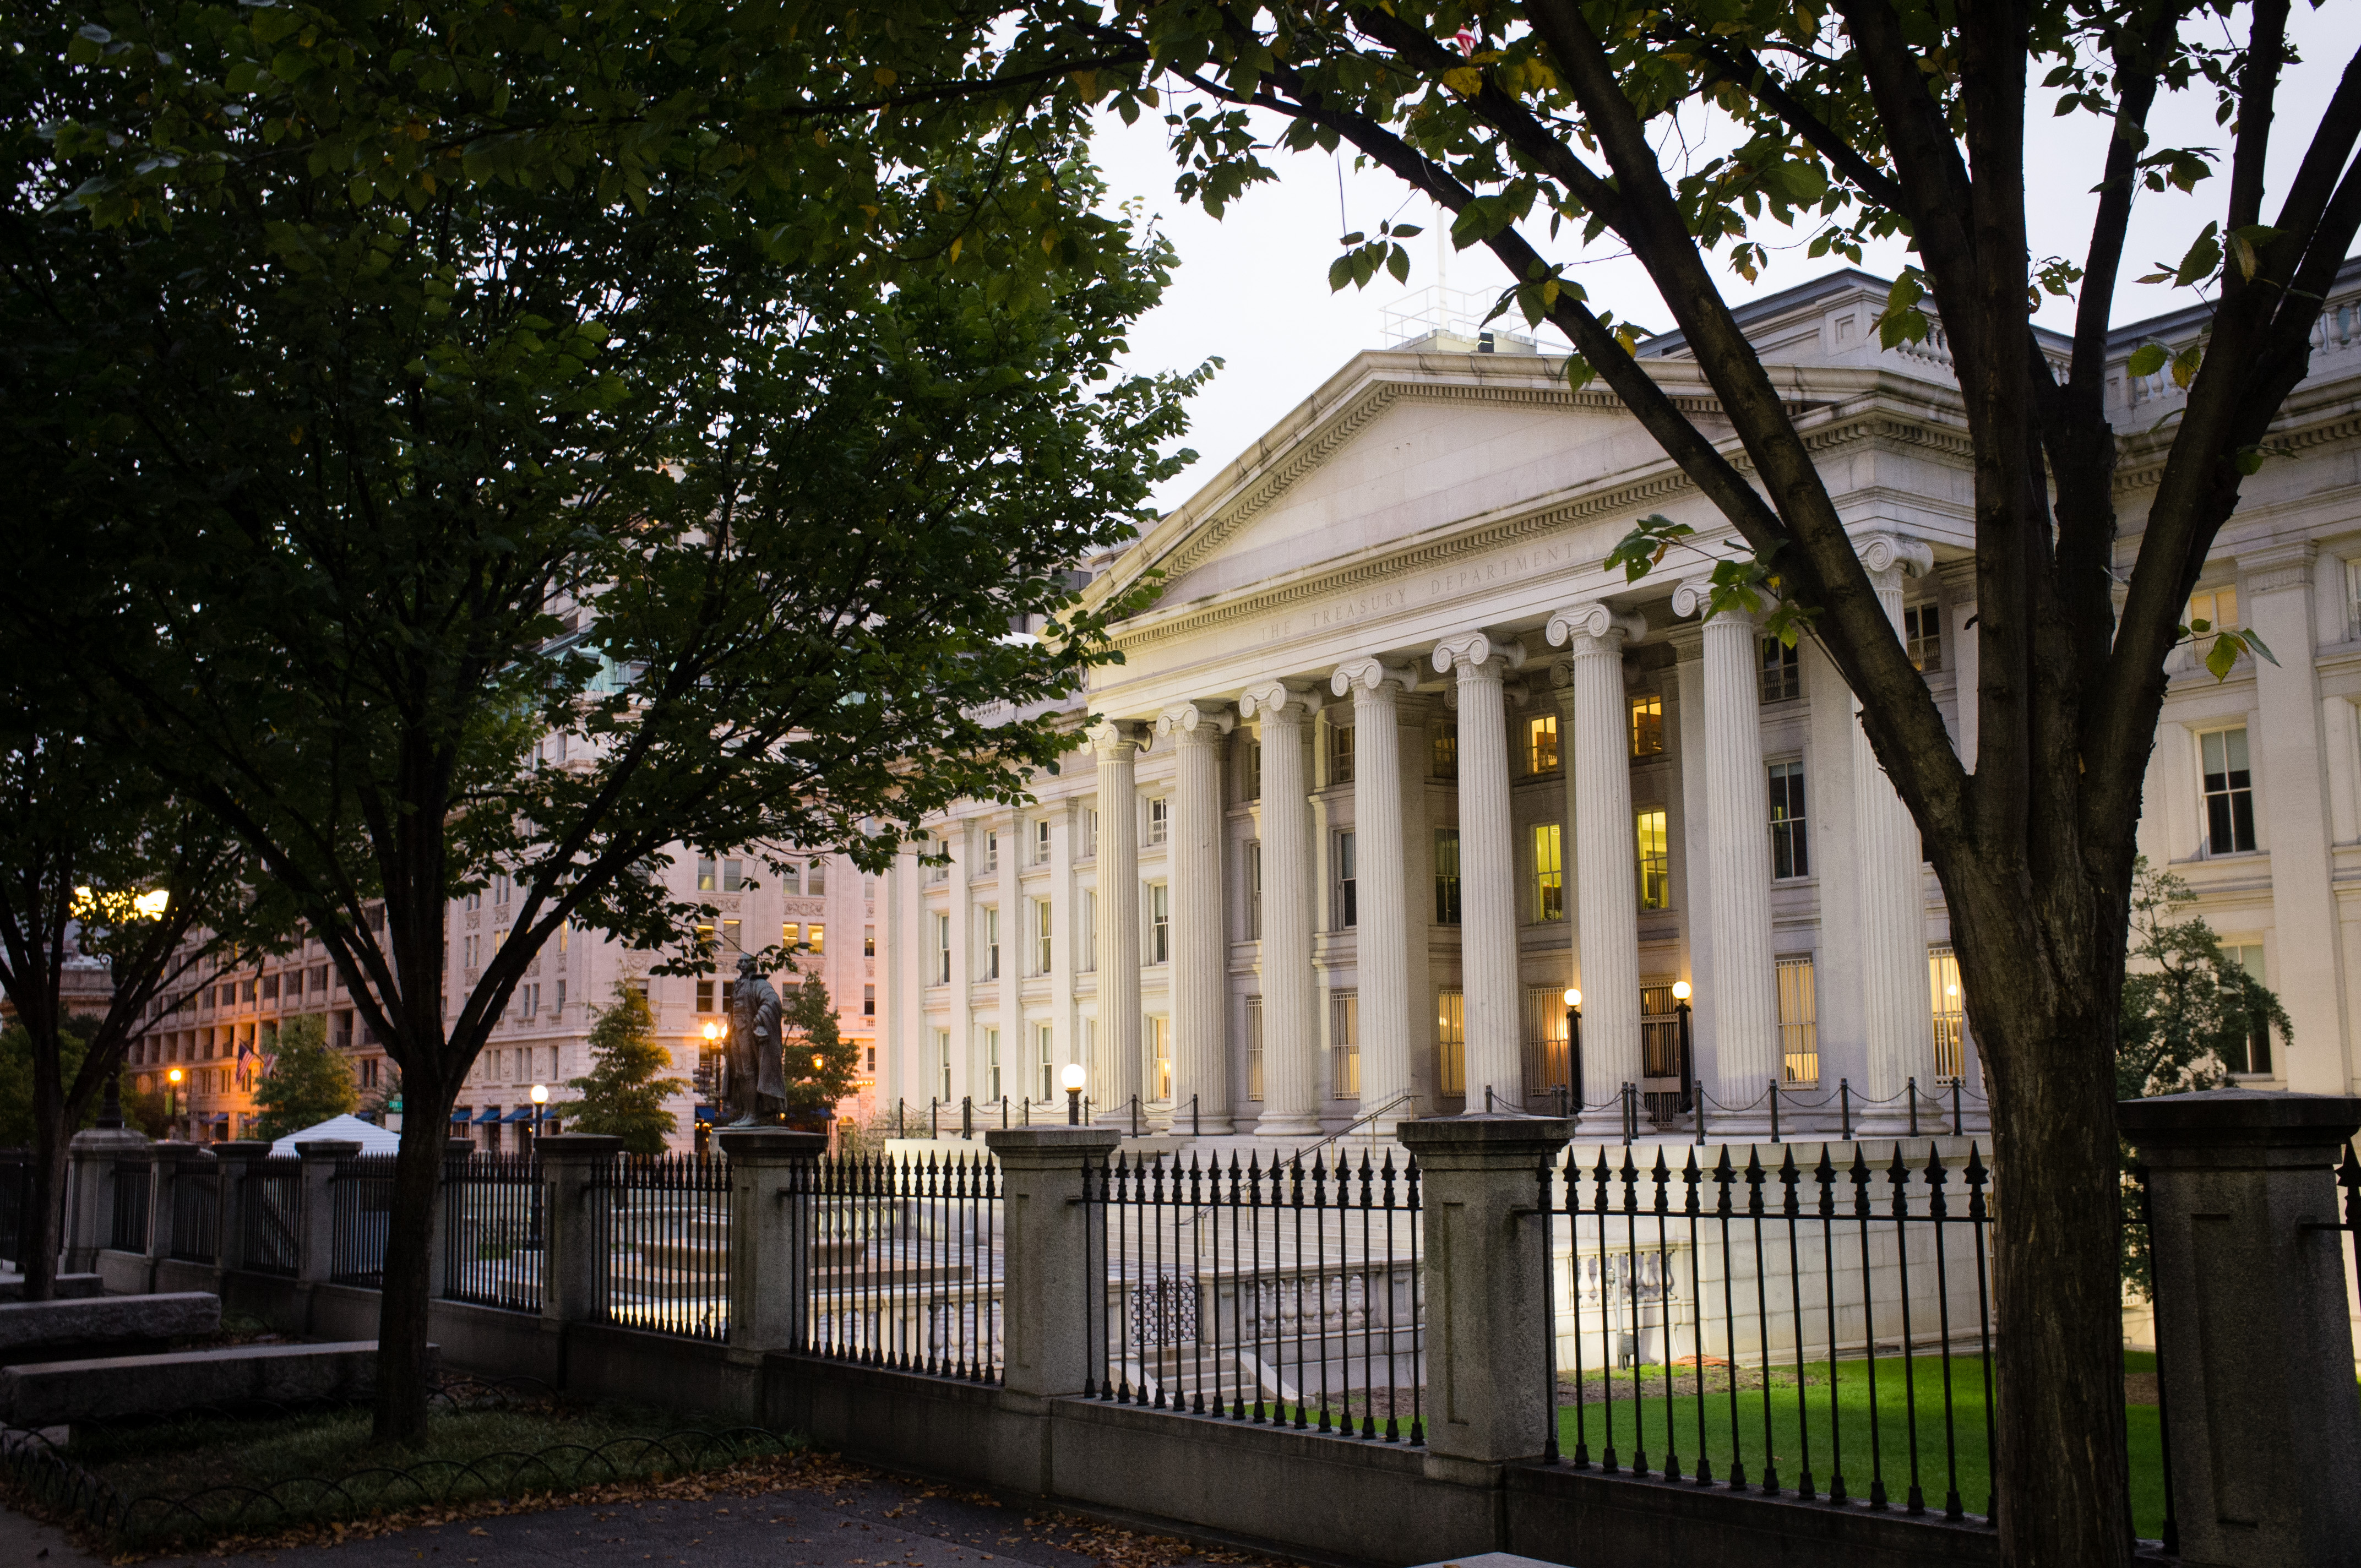 FILE - In this Wednesday, Oct. 16, 2013, file photo, the U.S. Treasury Building stands in Washington. On Tuesday, Feb. 16, 2016, the Treasury Department reports on foreign holdings of U.S. debt for December 2015. (AP Photo/J. David Ake, File)